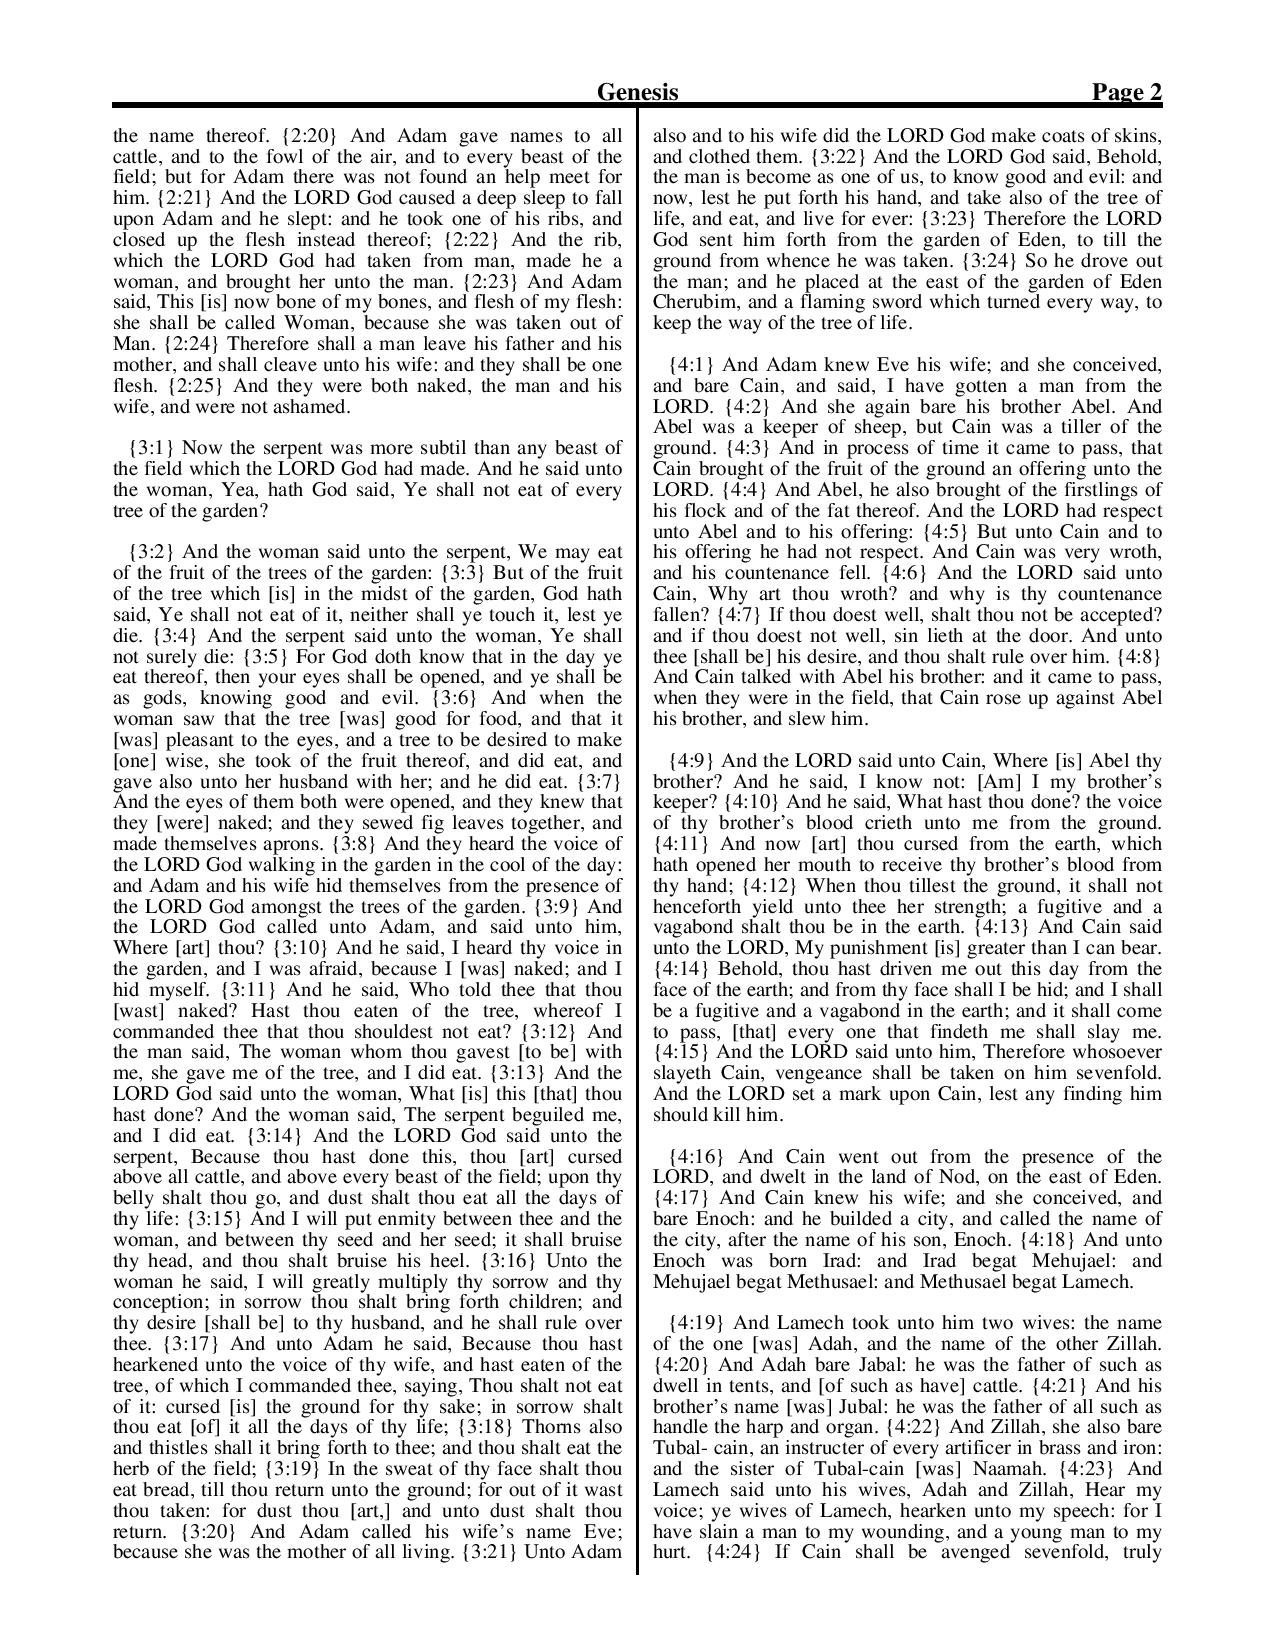 King-James-Bible-KJV-Bible-PDF-page-023